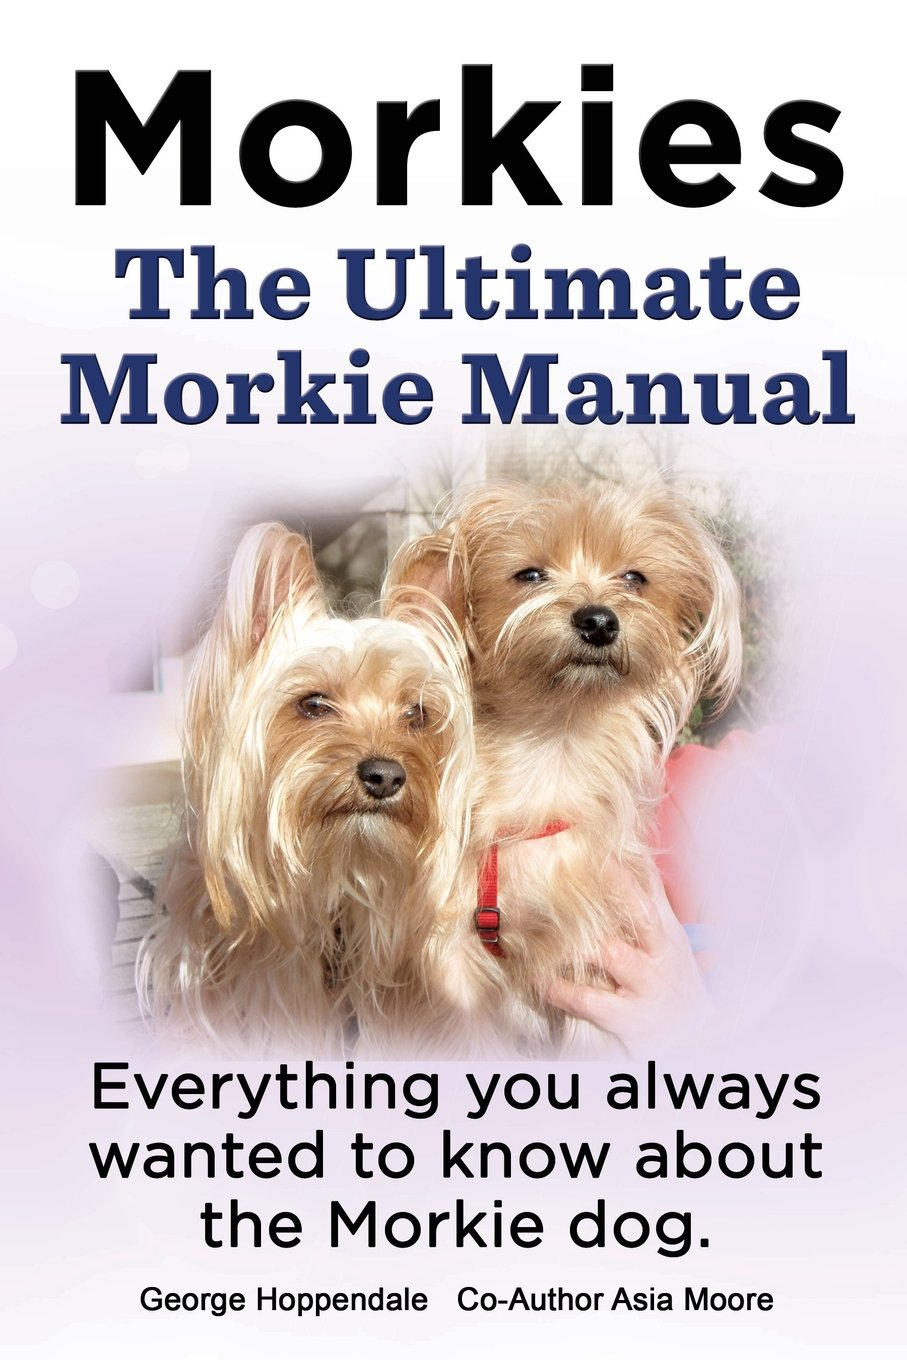 Morkies the ultimate morkie manual everything you always wanted morkies the ultimate morkie manual everything you always wanted to know about a morkie dog elliott lang george hoppendale asia moore 9781909151024 nvjuhfo Image collections